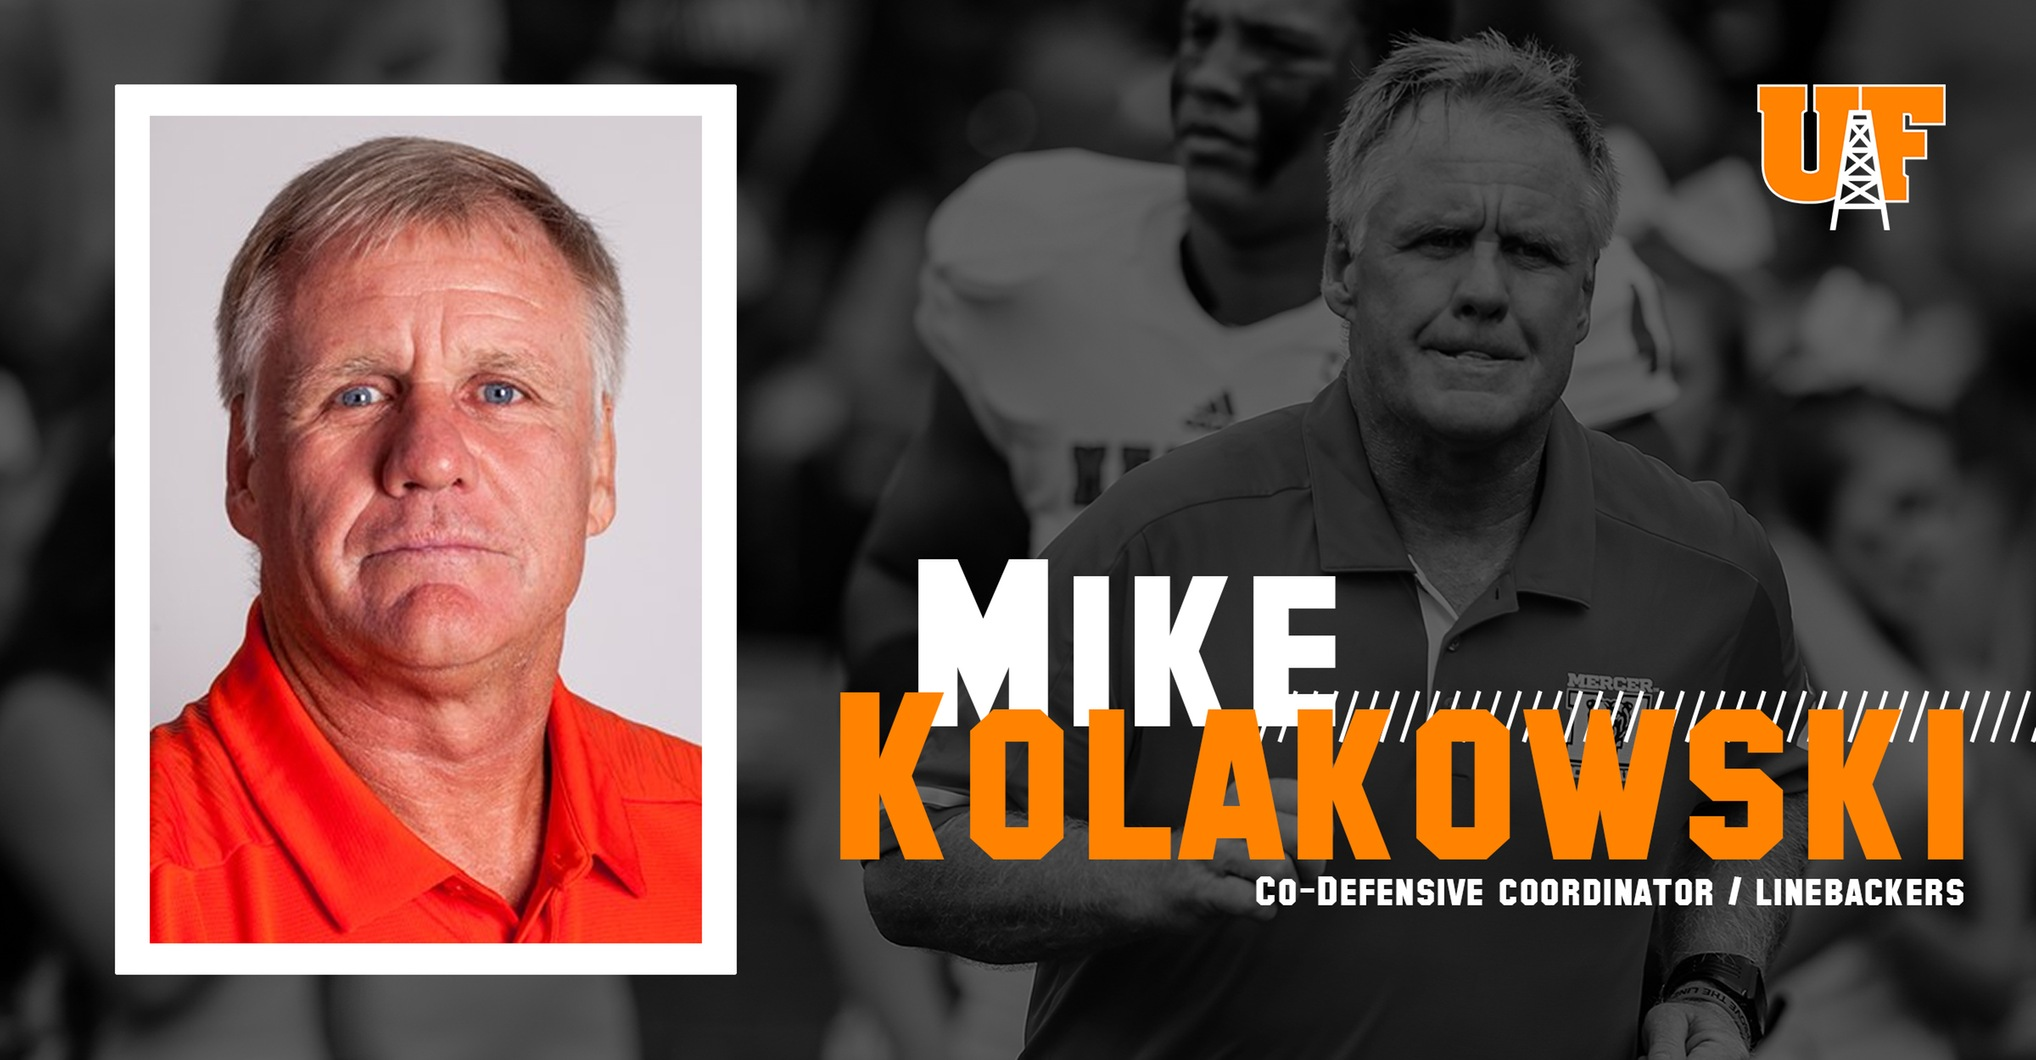 Kolakowski Hired as Co-Defensive Coordinator